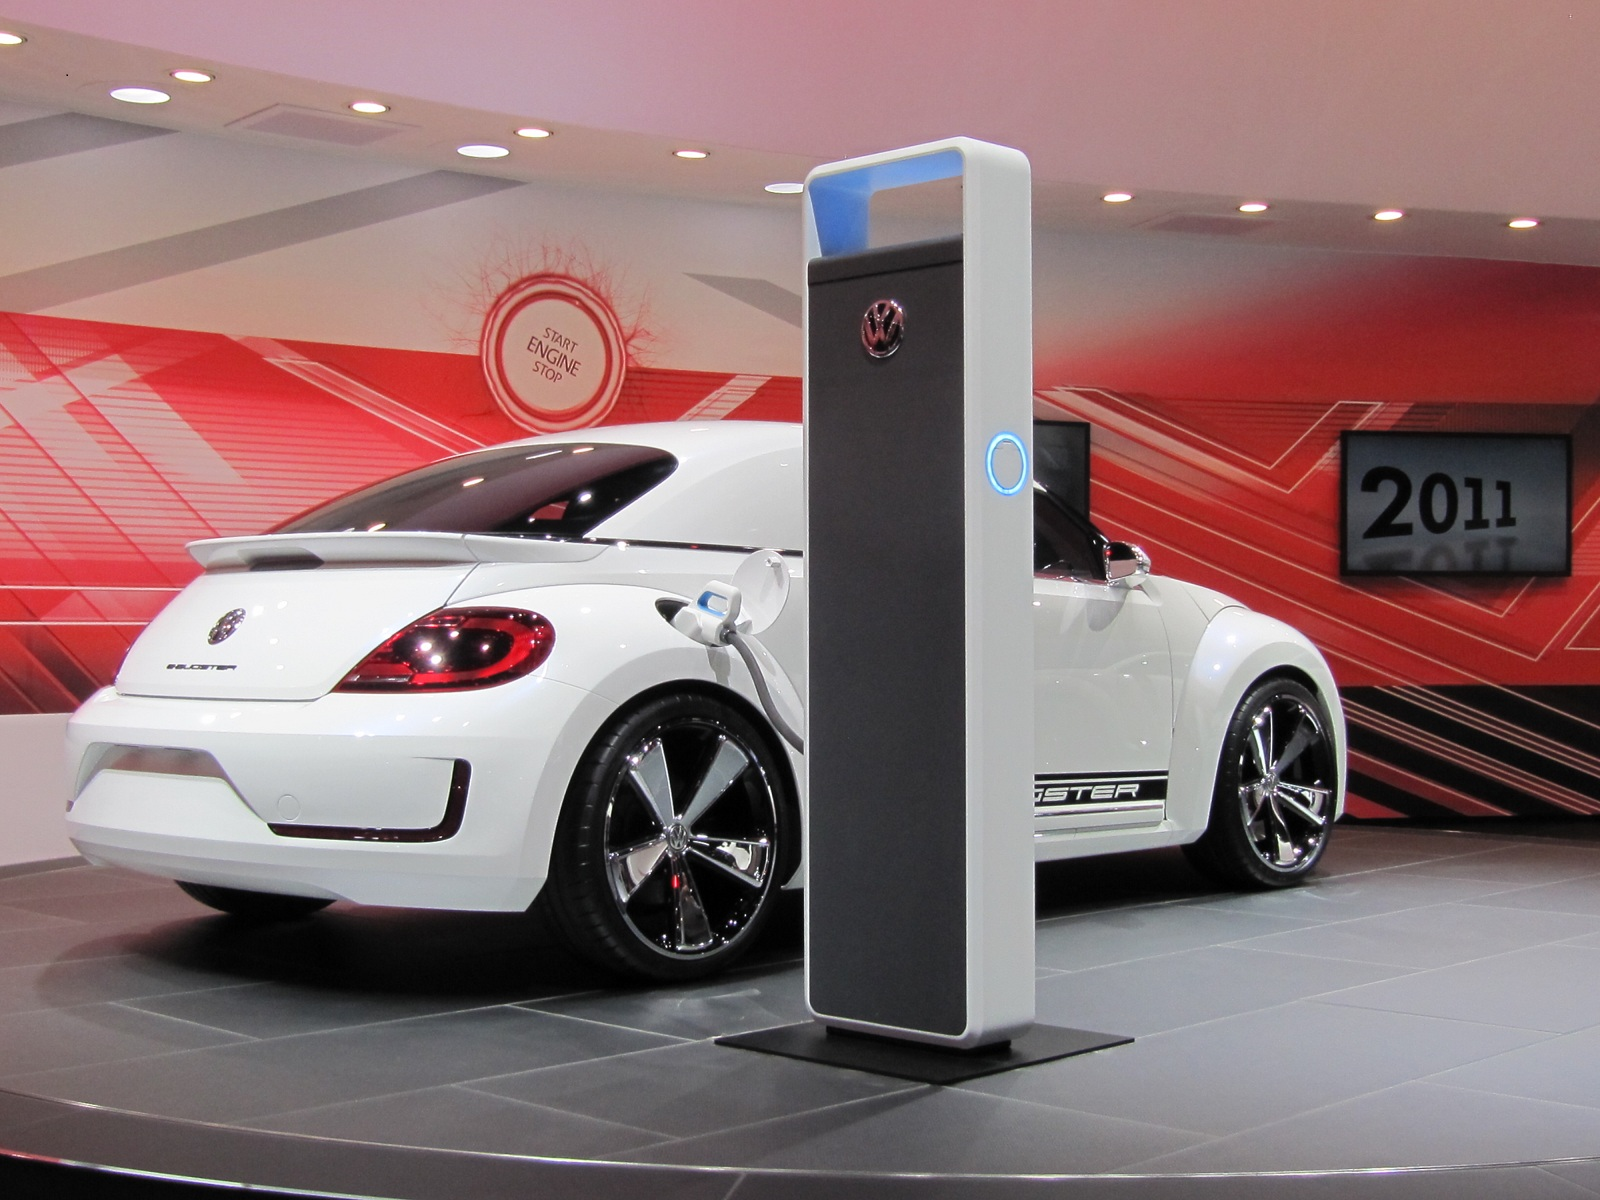 Best electric cars 2017 volkswagen tesla and more the week uk - Vw E Bugster Electric Concept Live Gallery 2012 Detroit